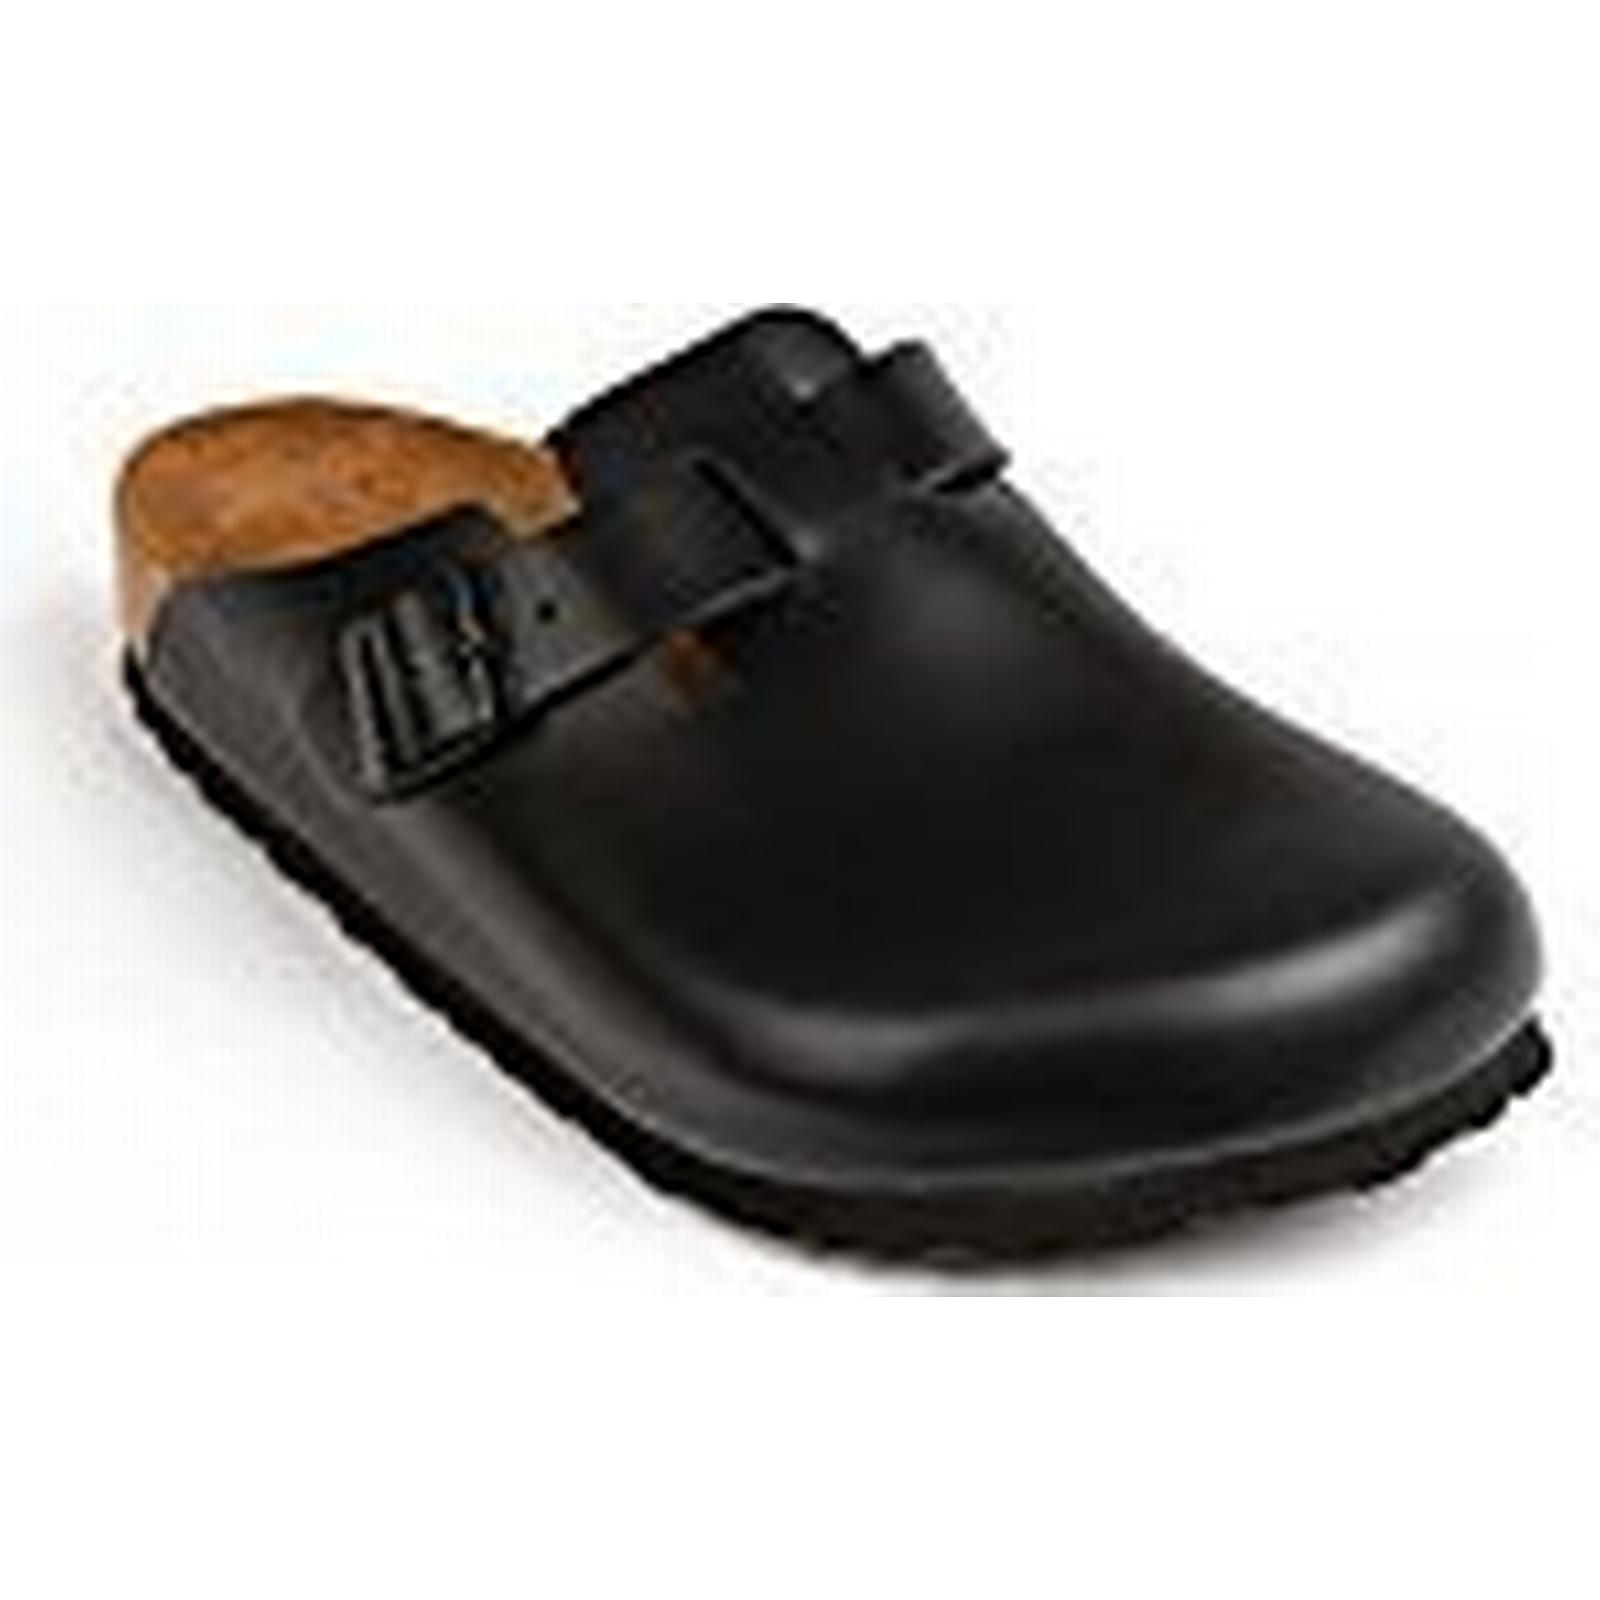 Birkenstock A482-46 Birkenstock Boston Size Clogs, Size Boston 46 17553e